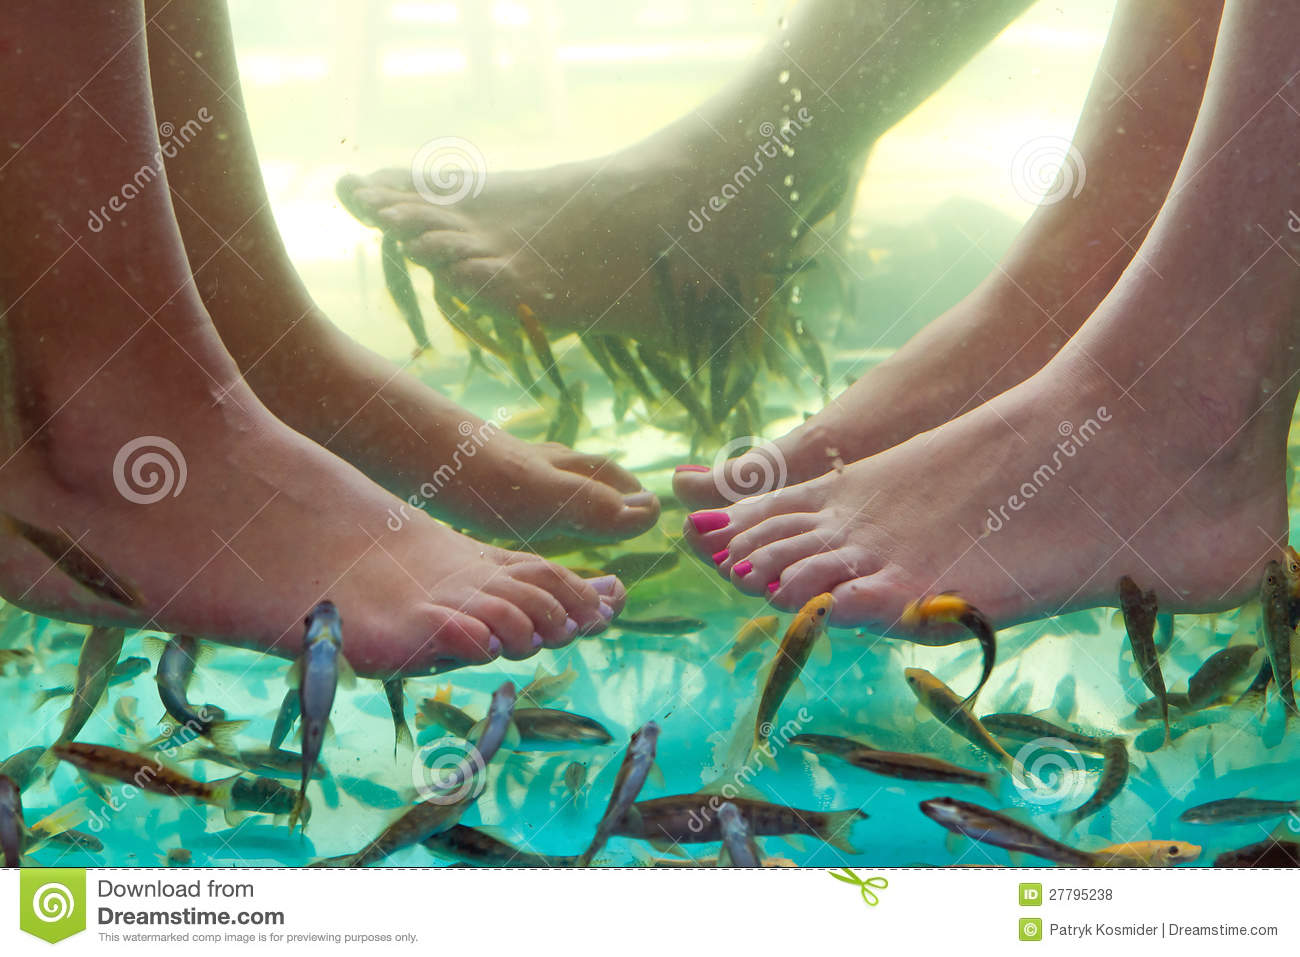 Fish spa pedicure of feet royalty free stock photos for Fish pedicure price